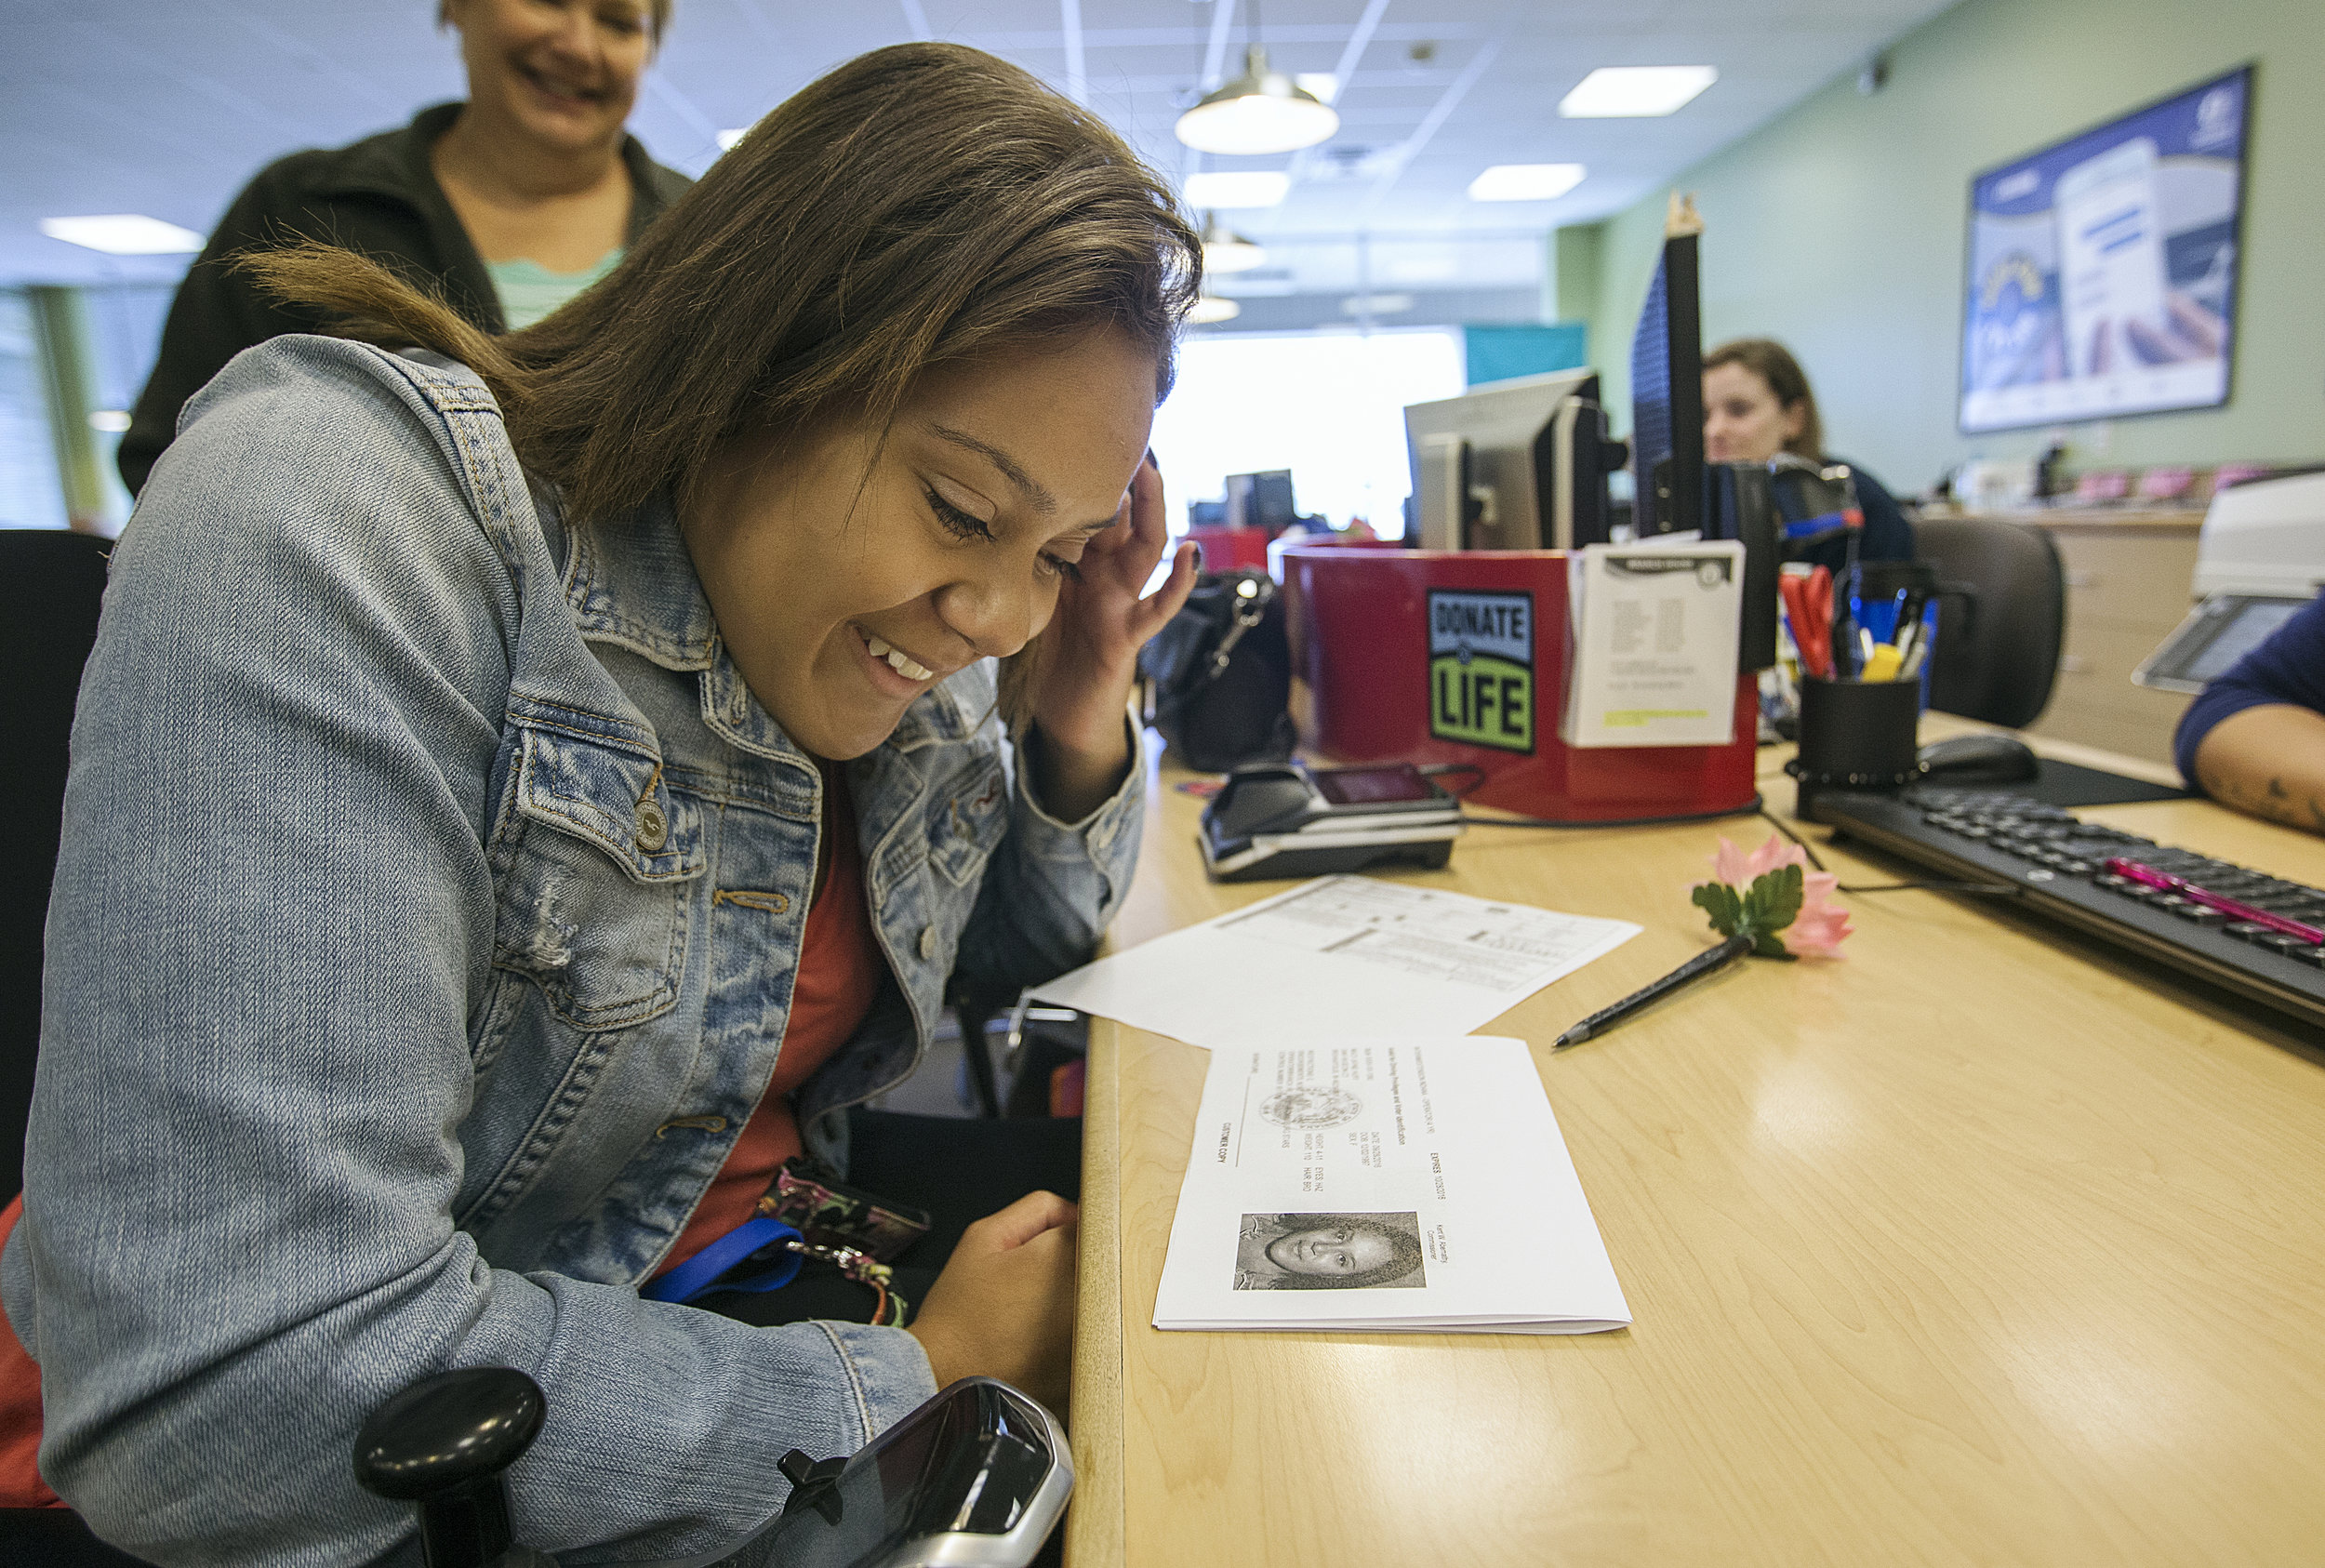 Macy's face lights up as she receives a temporary copy of her driver's license. Earning her license is the next step in Macy earning her independence.